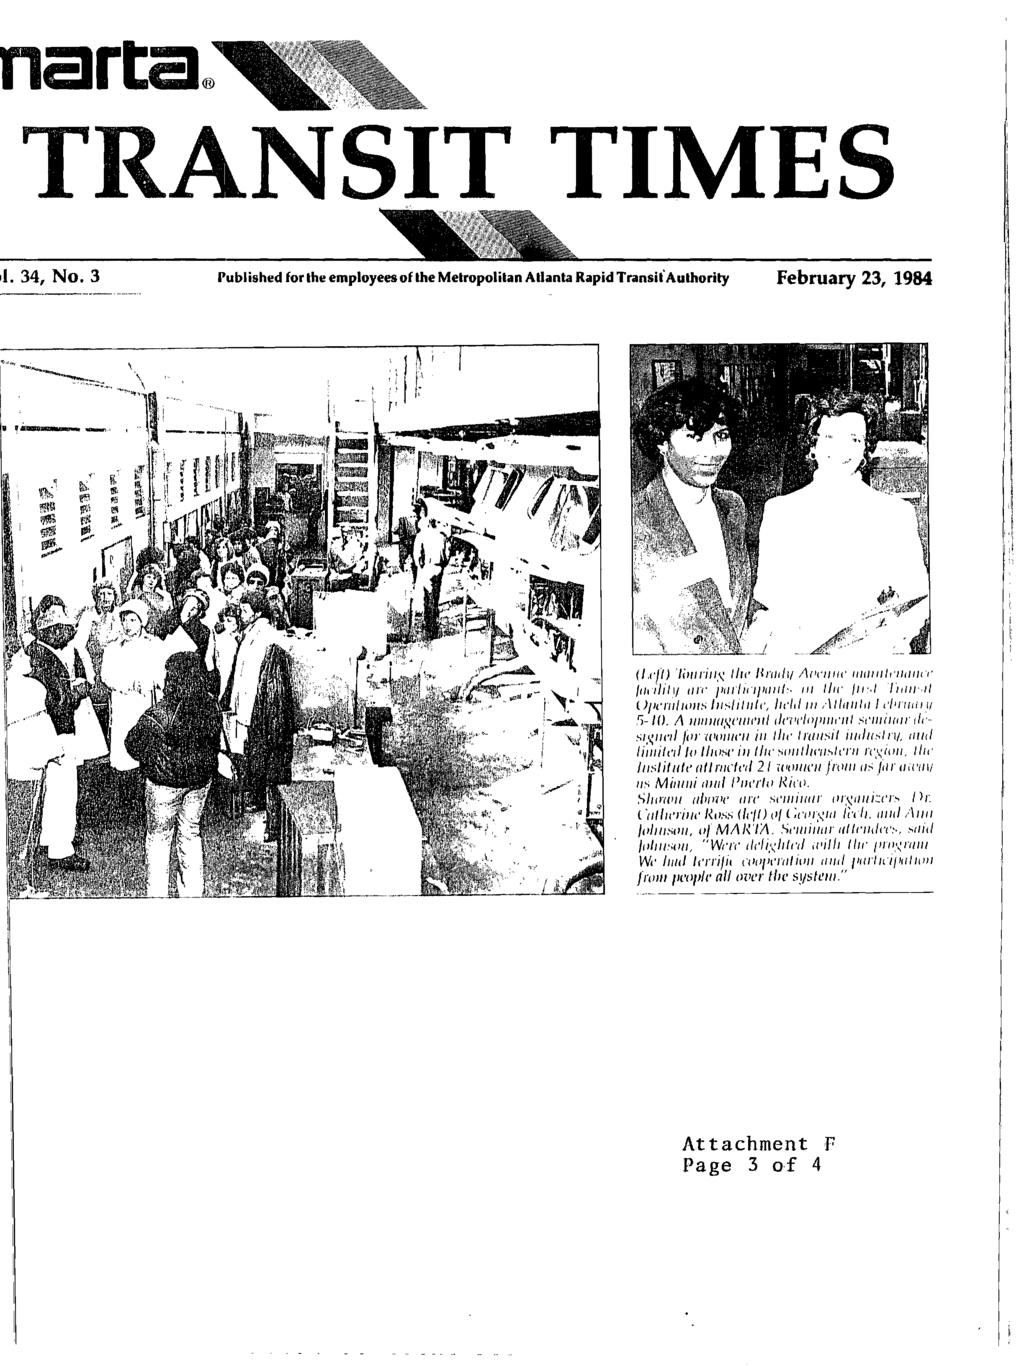 TRANSIT TIMES 11. 34, No. 3 Published for the employees of the Metropolitan Atlanta Rapid Transit.Authority February 23, 1984 (1,ef linorion llre Braila Avenue mamicamme lailhly are IrurlicilranV.